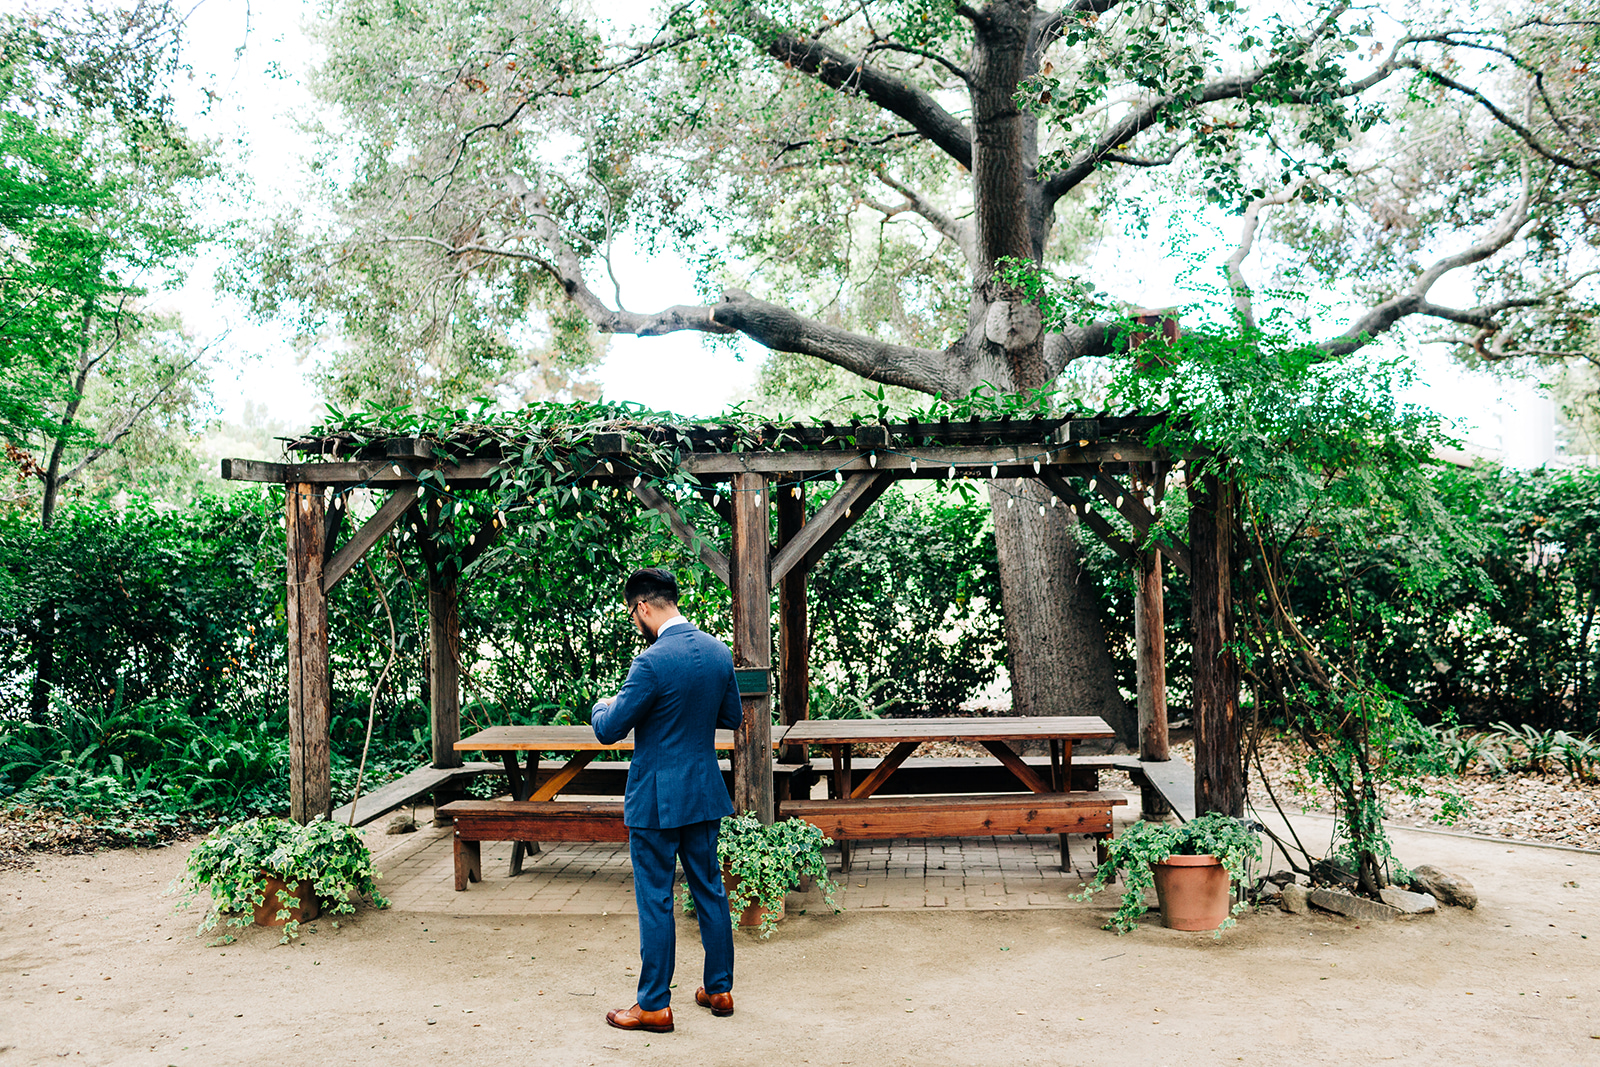 Los-Altos-History-Museum-Wedding_Orange-County-Wedding-Photographer_Clarisse-Rae-Photo-Video_27